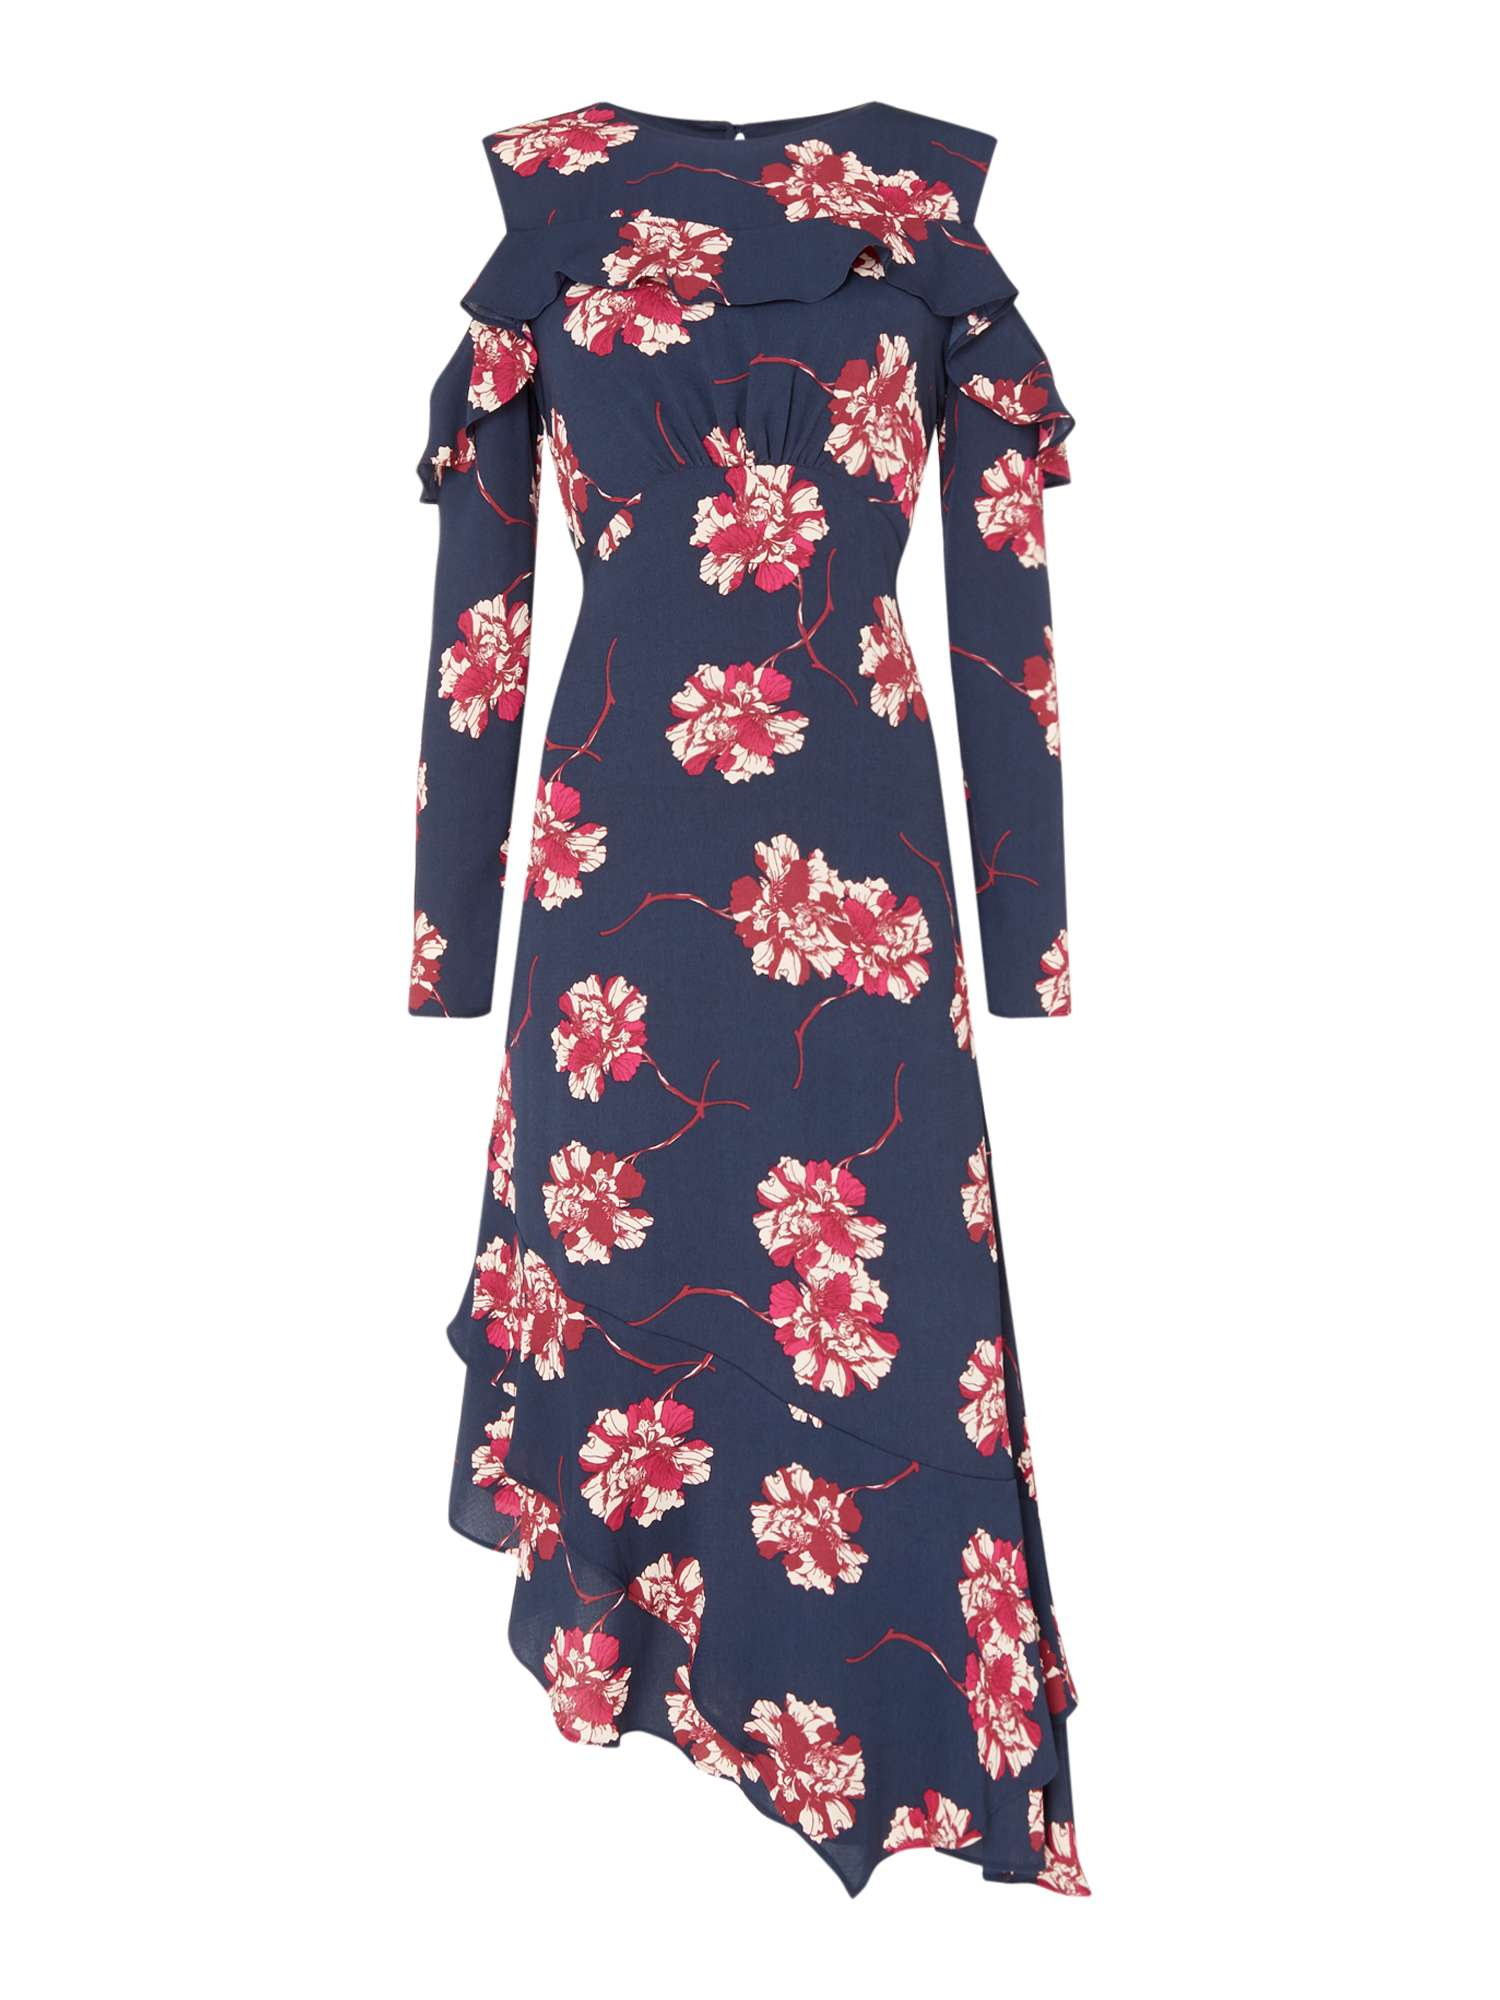 Issa at House of Fraser | fashionmommy\'s Blog